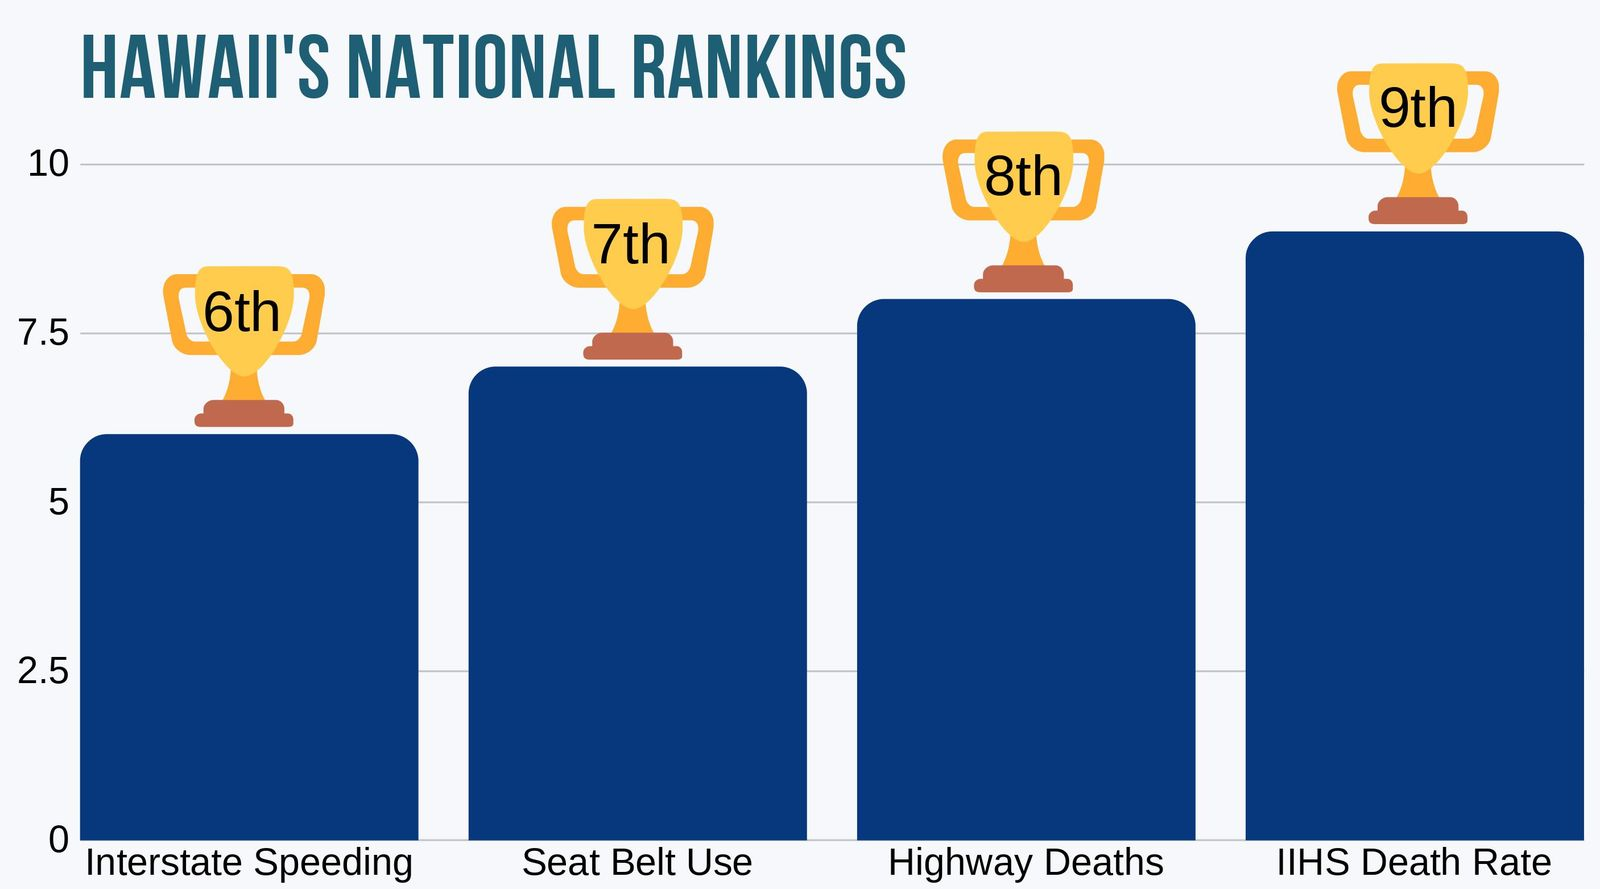 Hawaii's national rankings best four categories